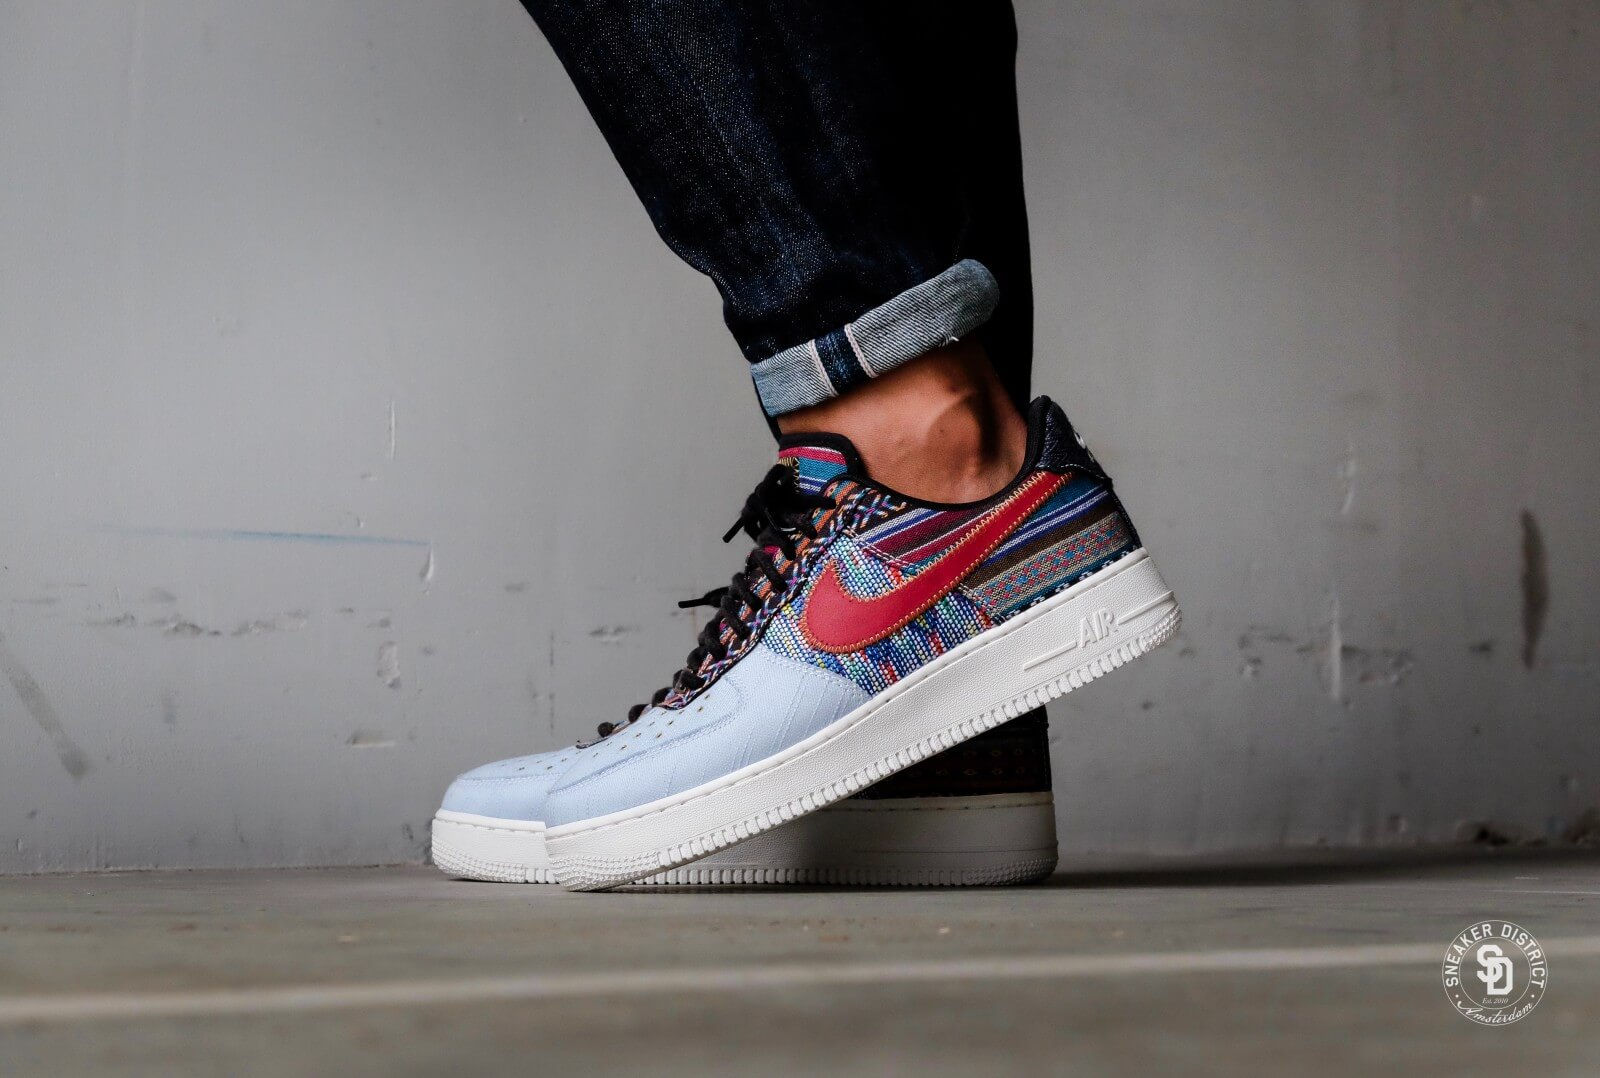 Nike Air Force 1 ´07 LV8 Light Armory Blue Gym Red   Footshop